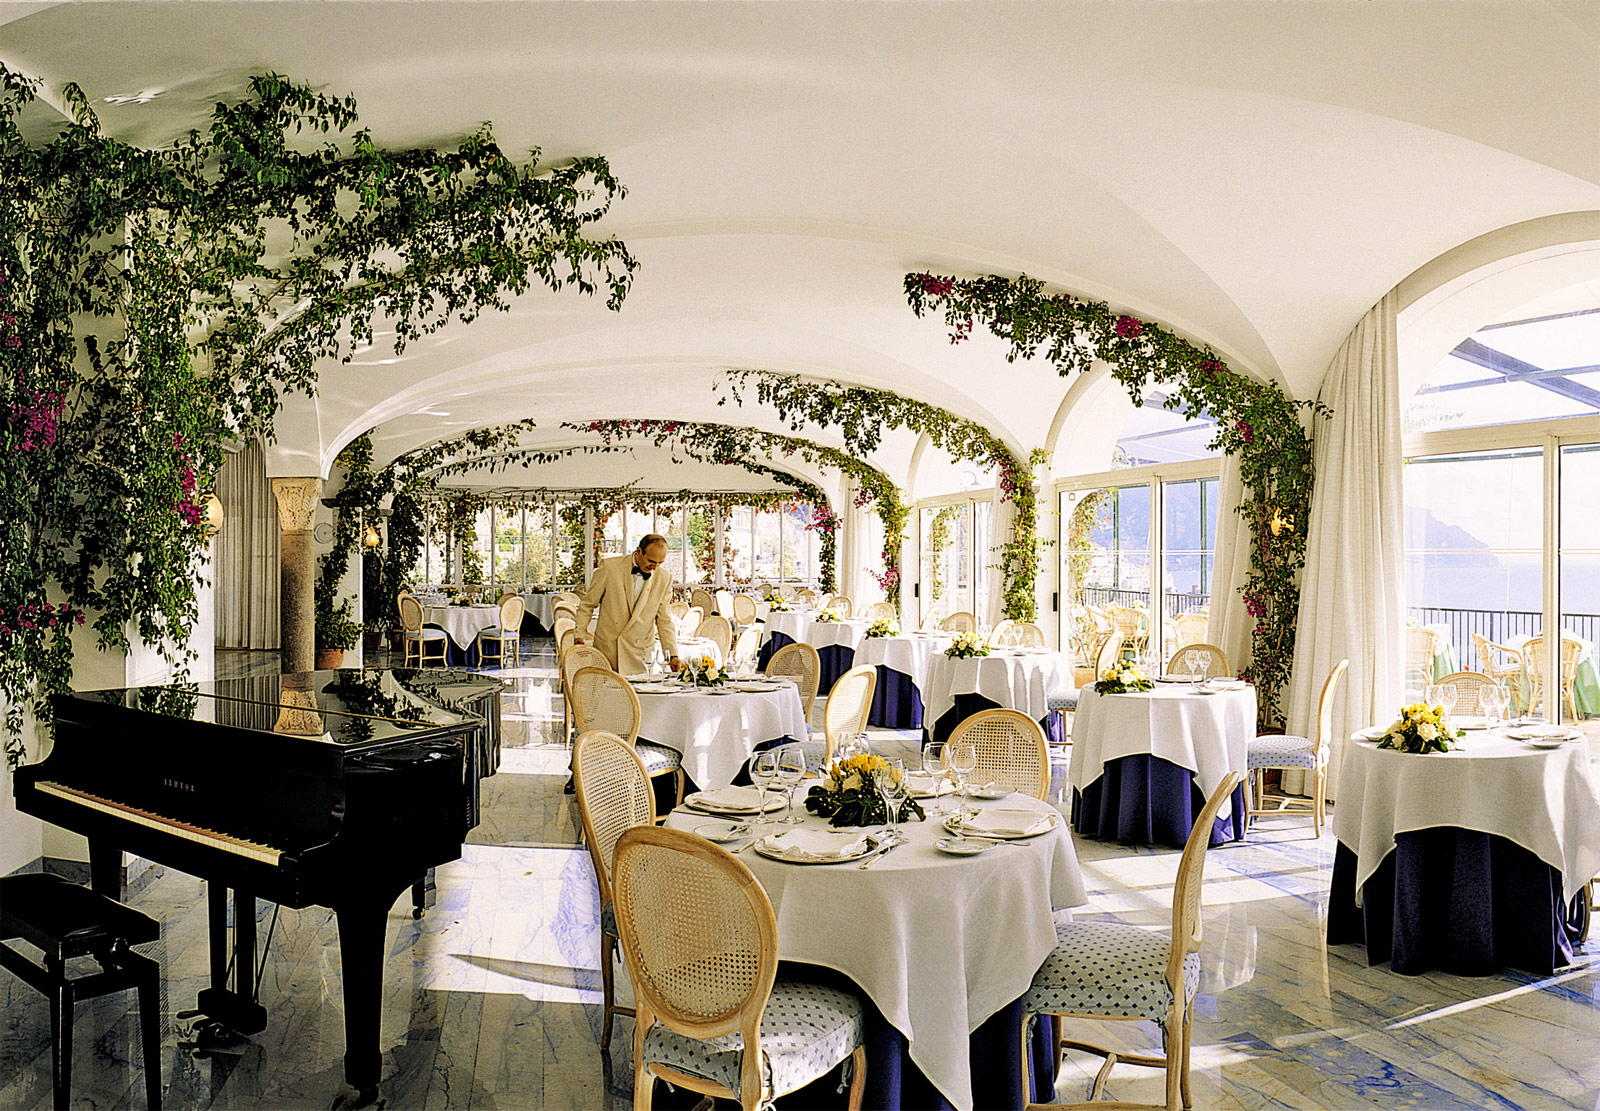 The Sophisticated Charm Of The Amalfi Coast's Hotel Santa Caterina 4